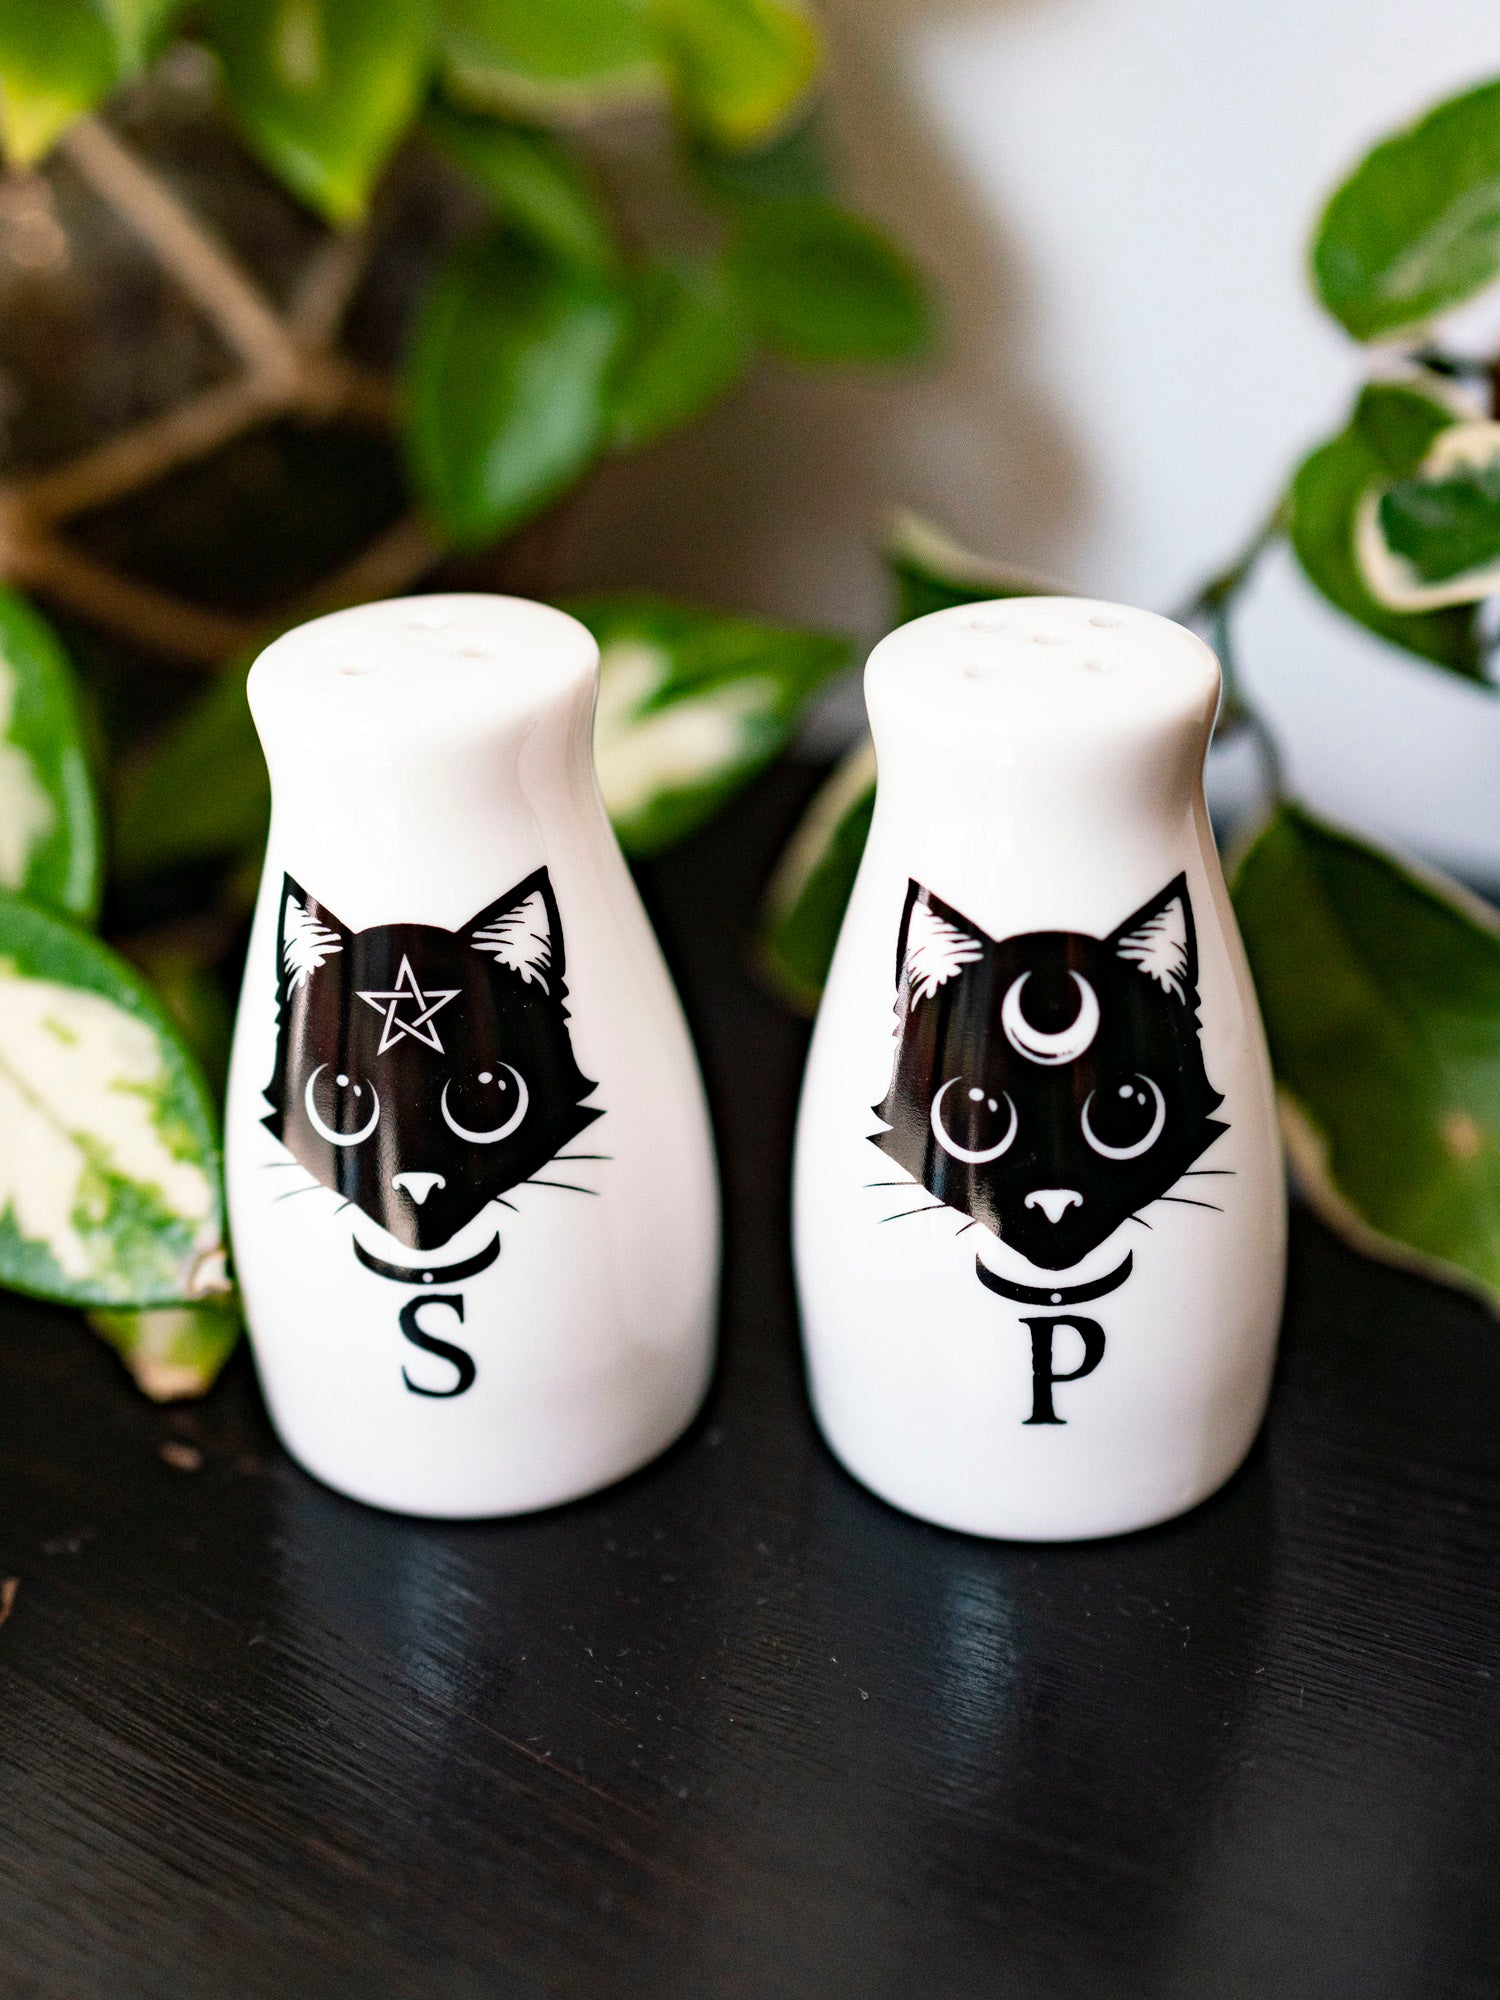 Black Cats Salt & Pepper Shakers